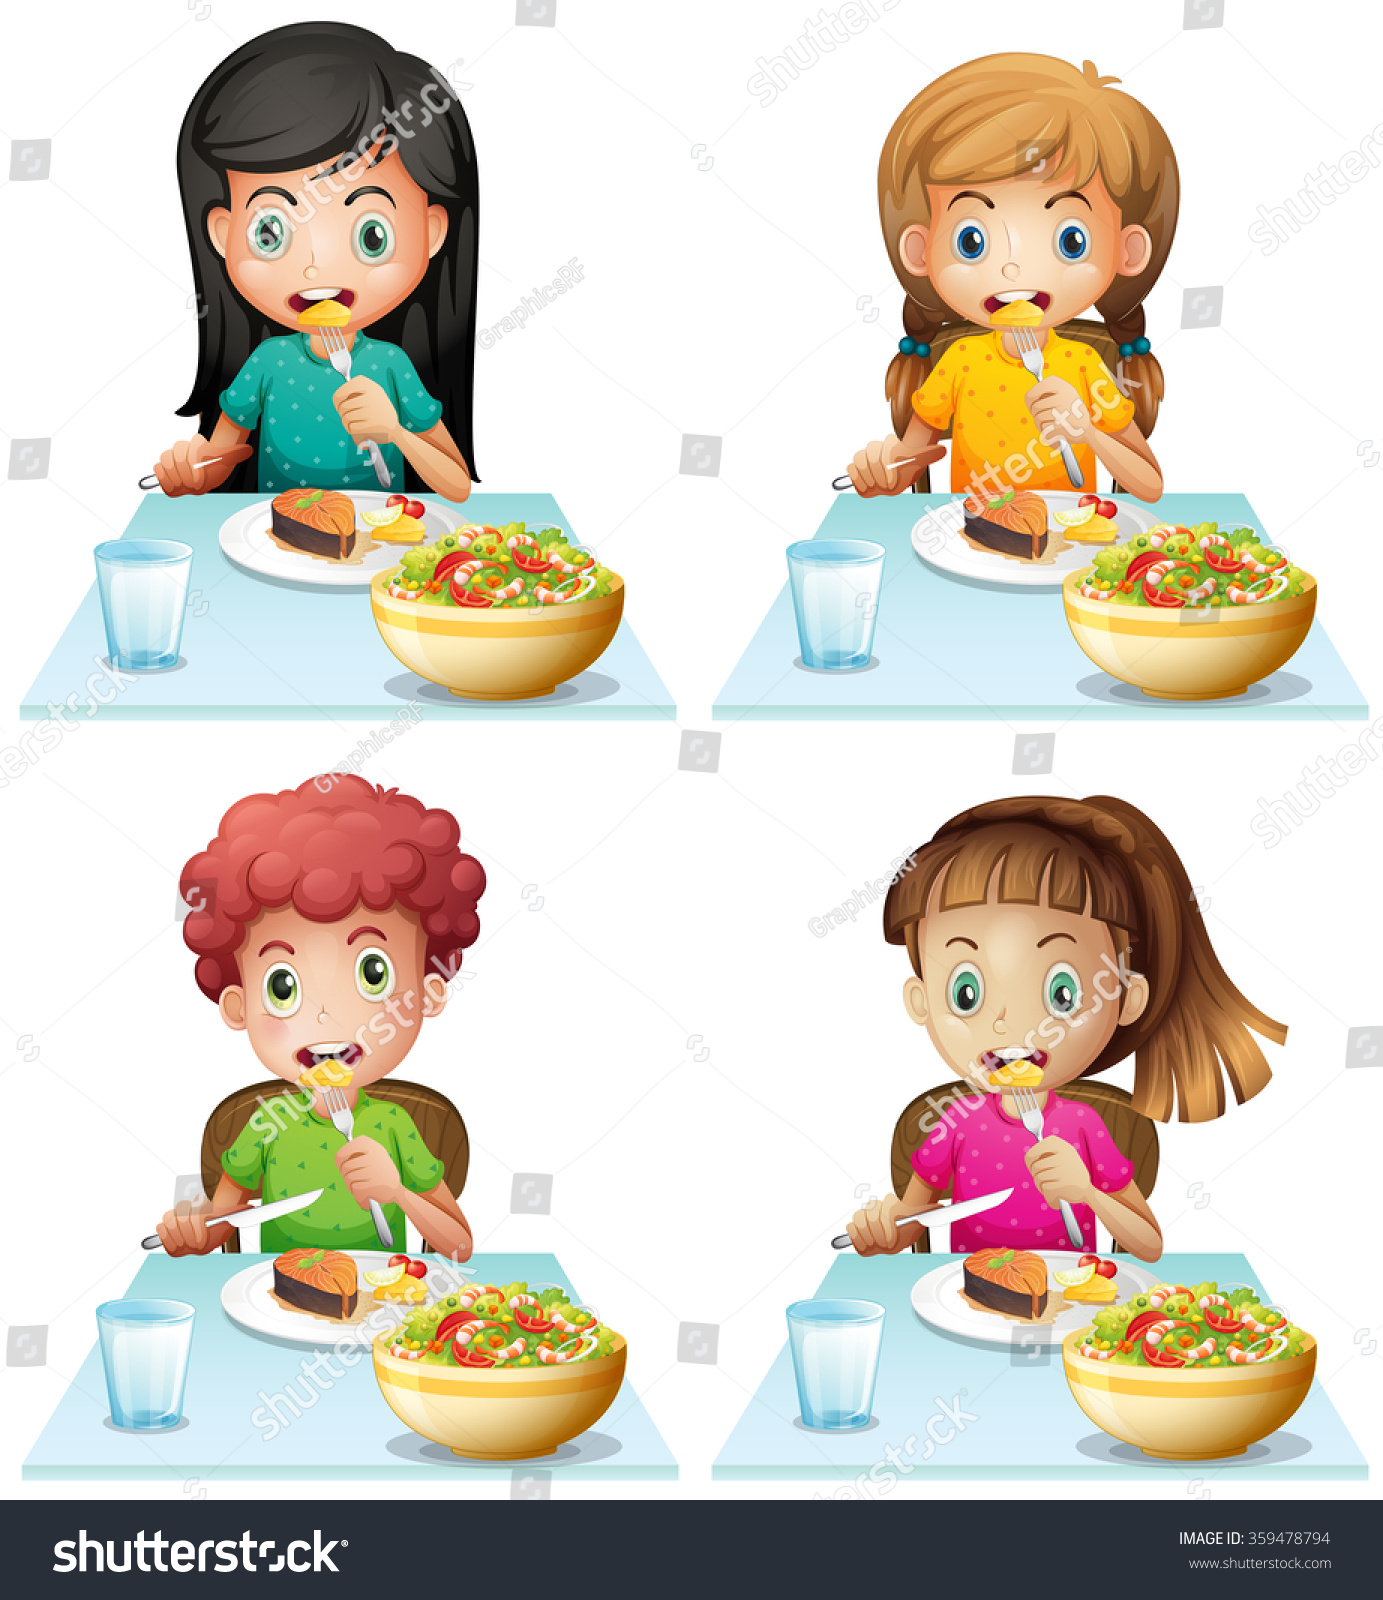 clipart girl eating breakfast - photo #43